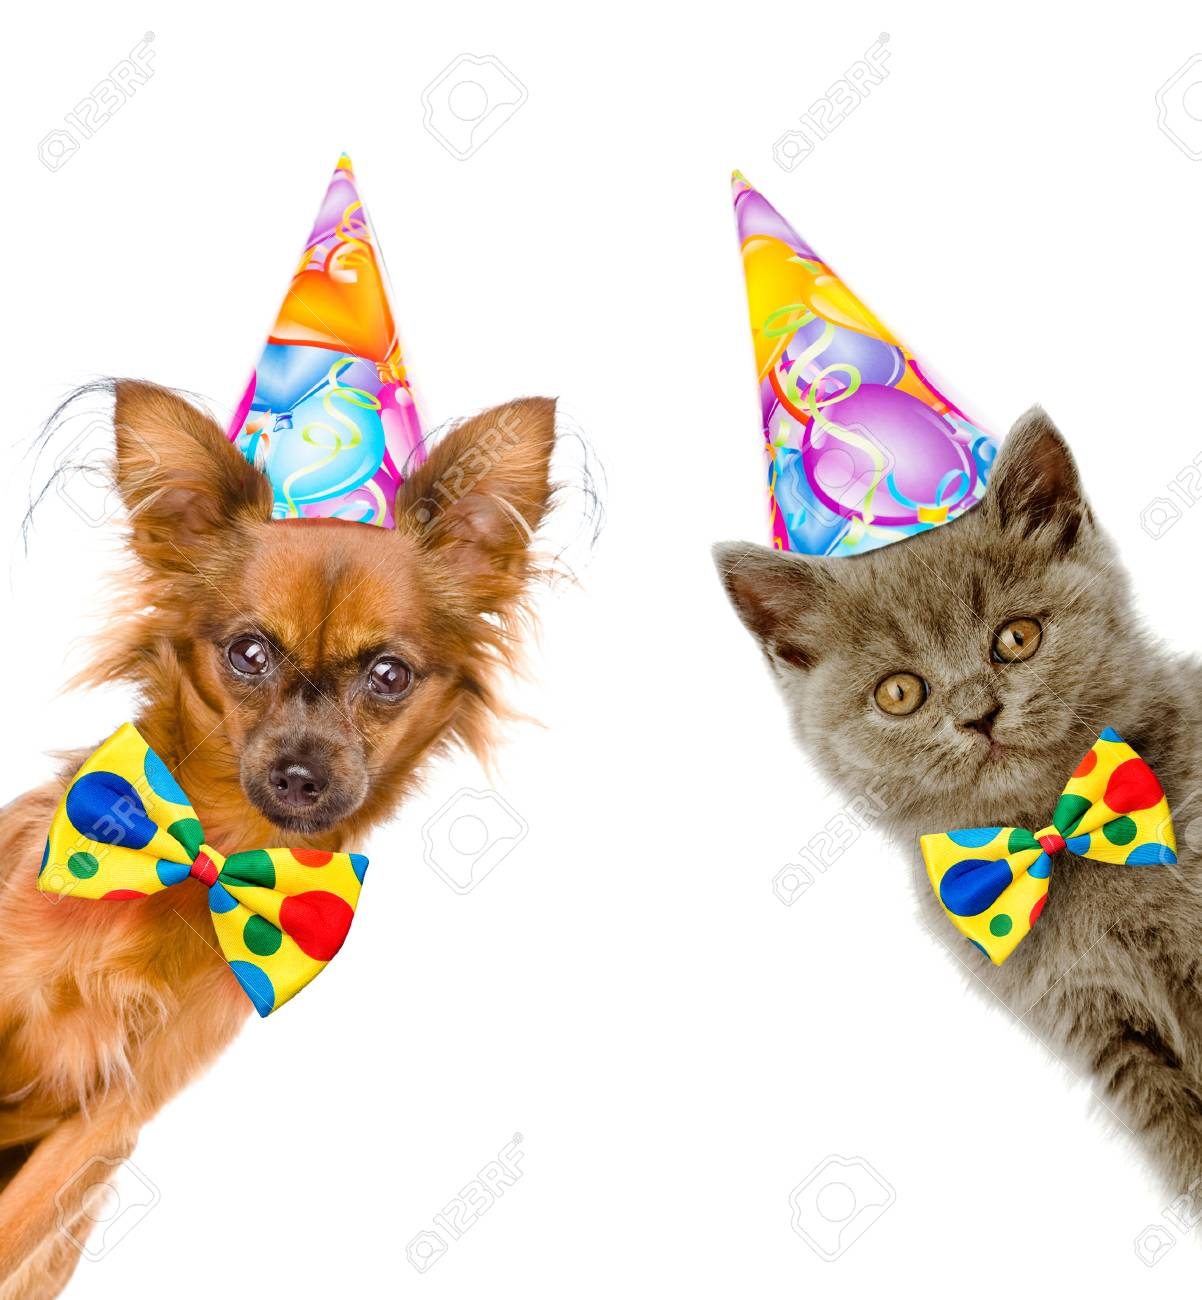 Cat And Dog In Birthday Hats With Bow Tie Look Out From Behind A Banner